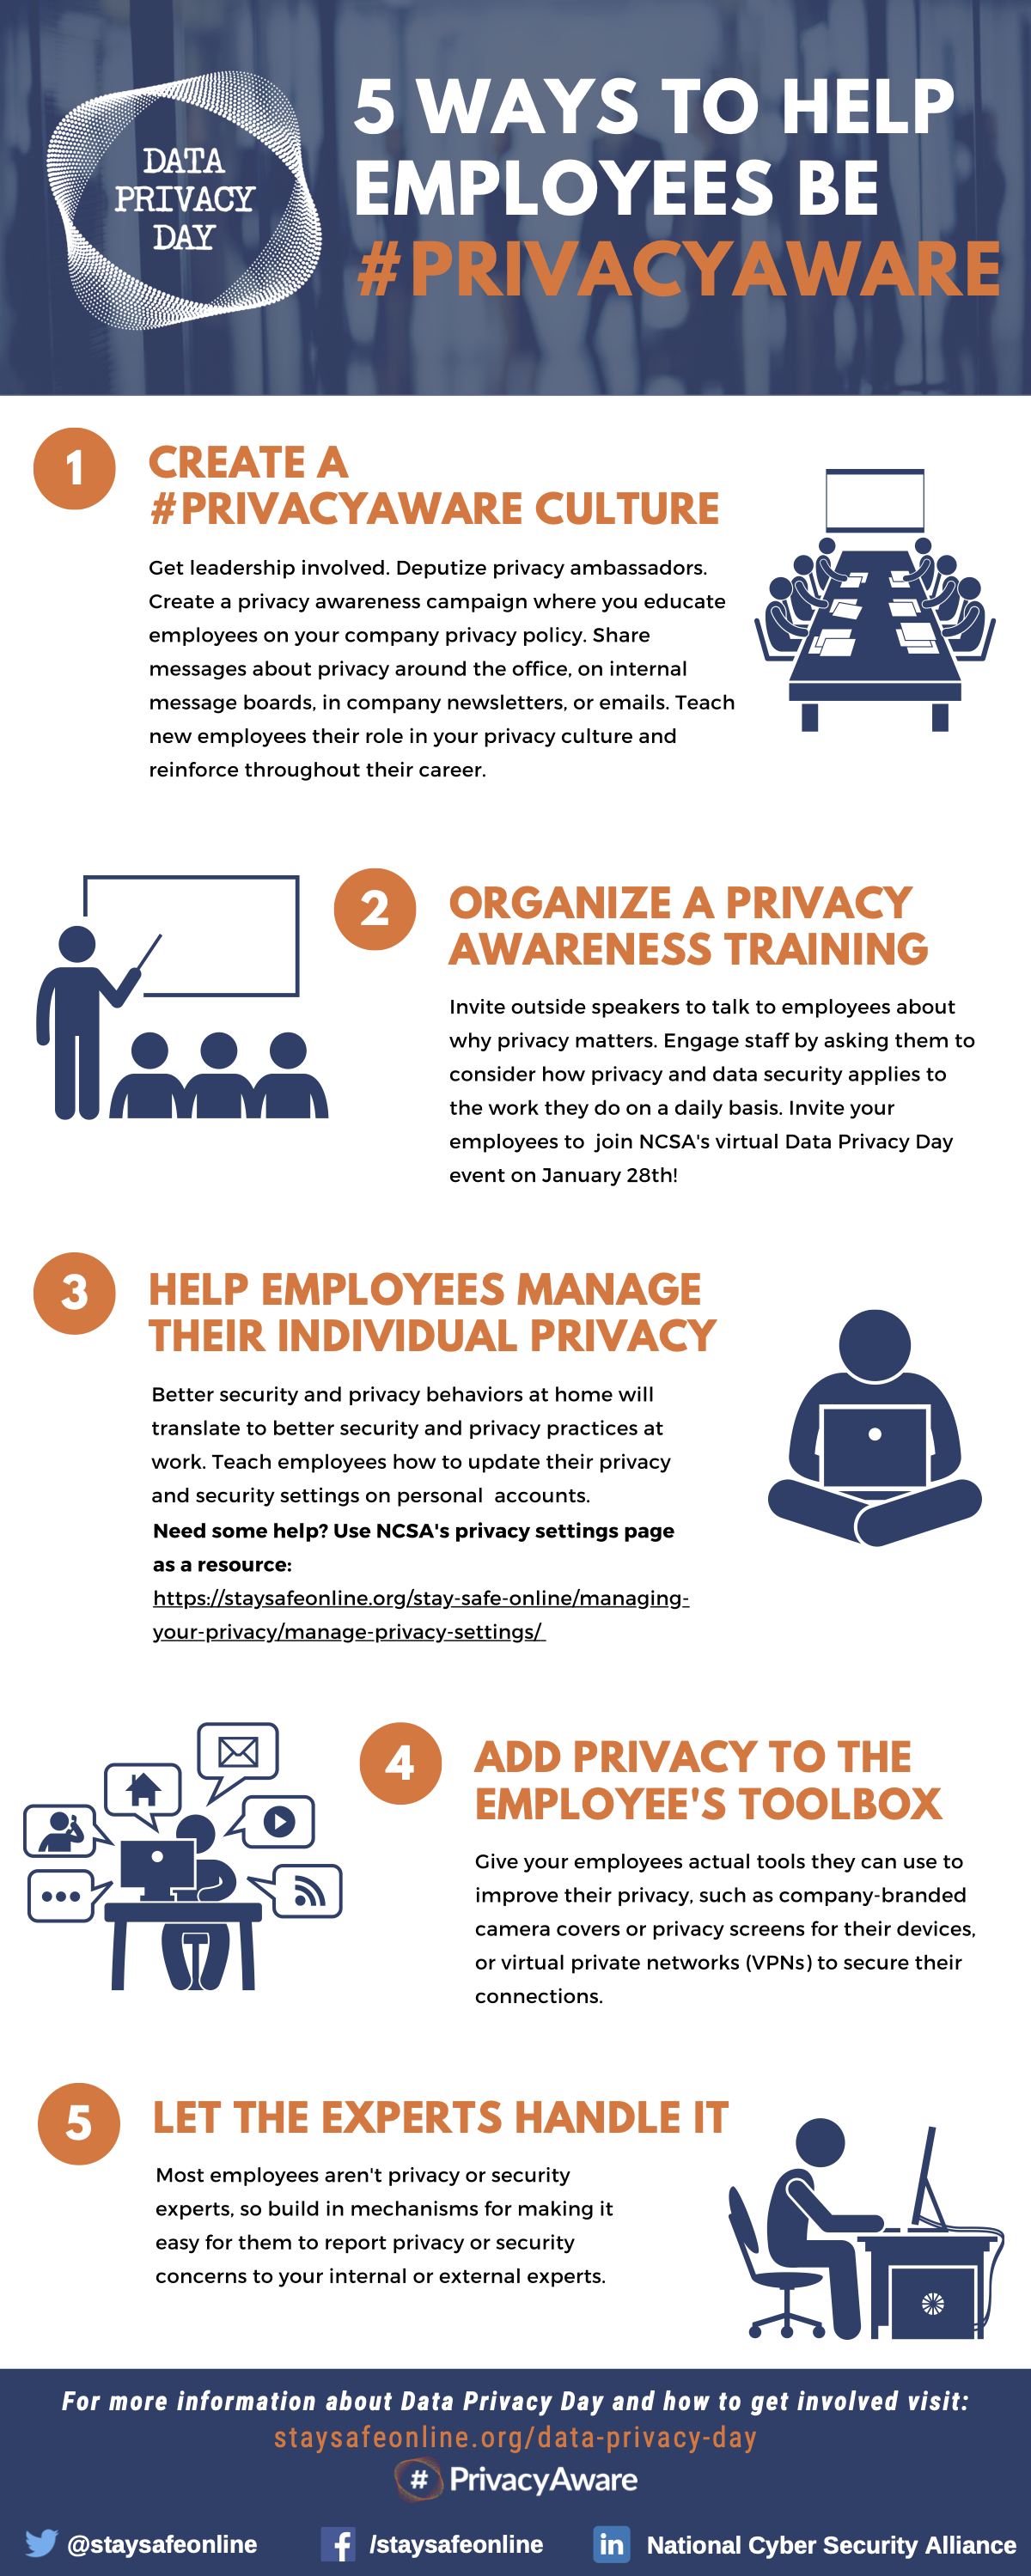 5 Ways to Help Employees be #PrivacyAware